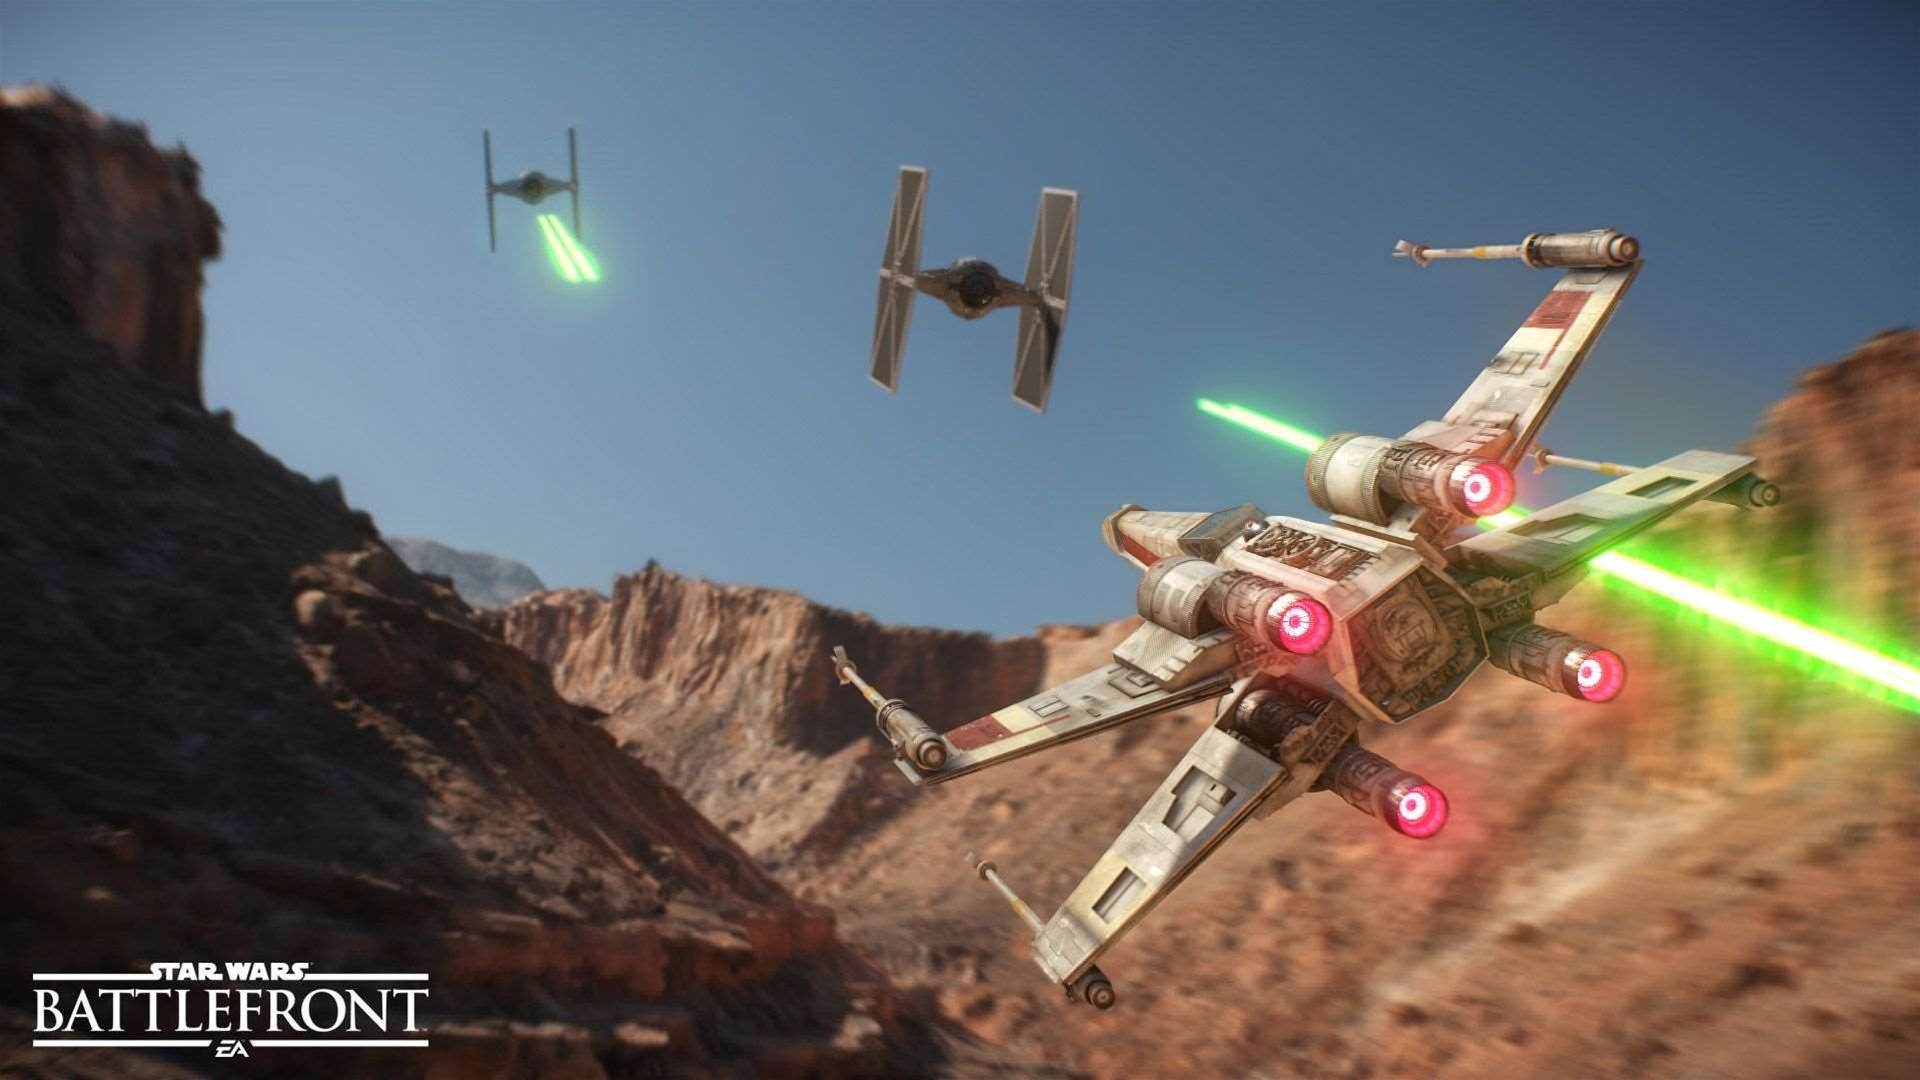 Star Wars: Battlefront PC requirements revealed